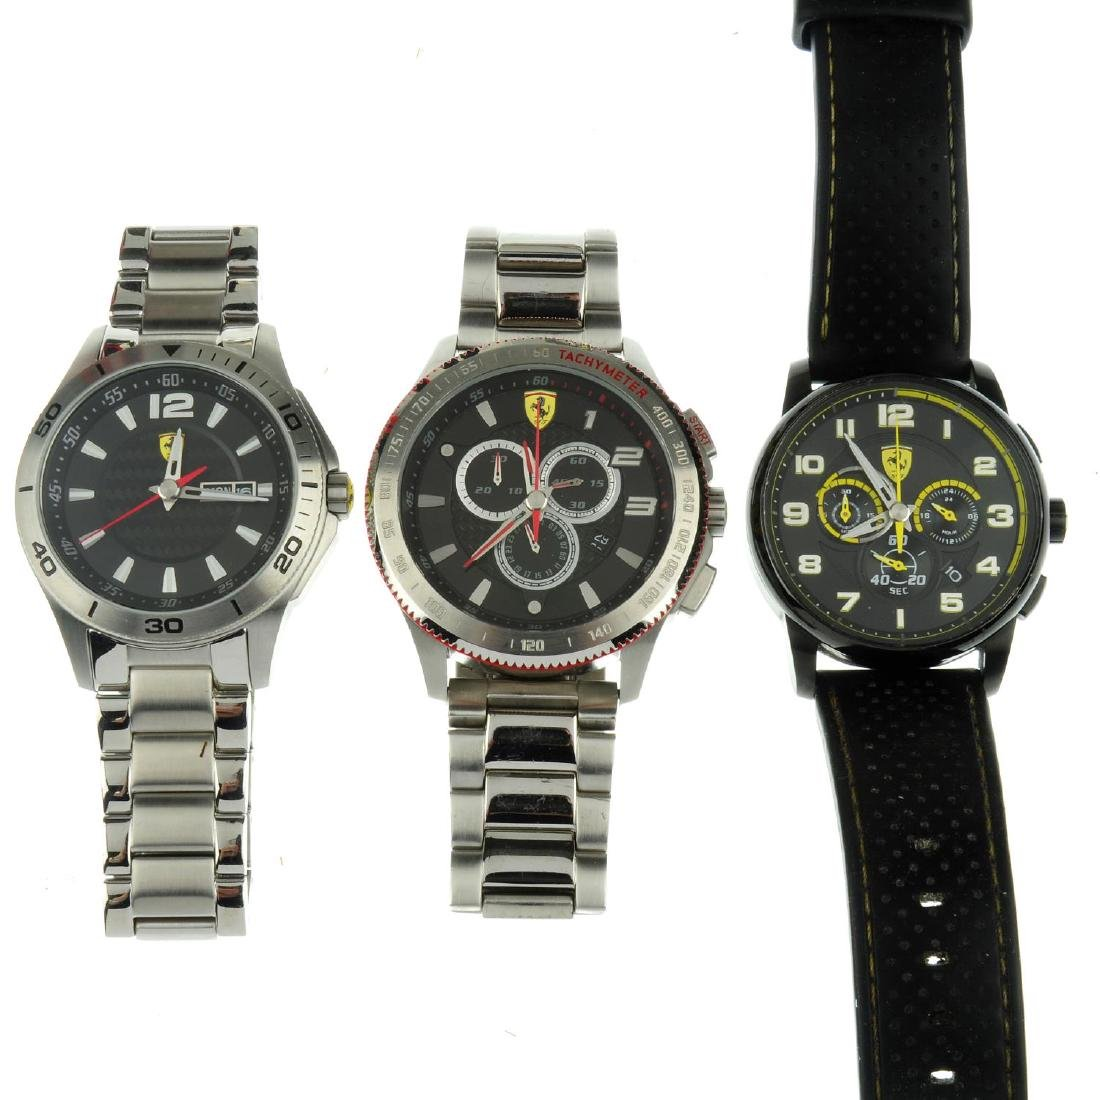 A group of twelve Scuderia Ferrari watches. All